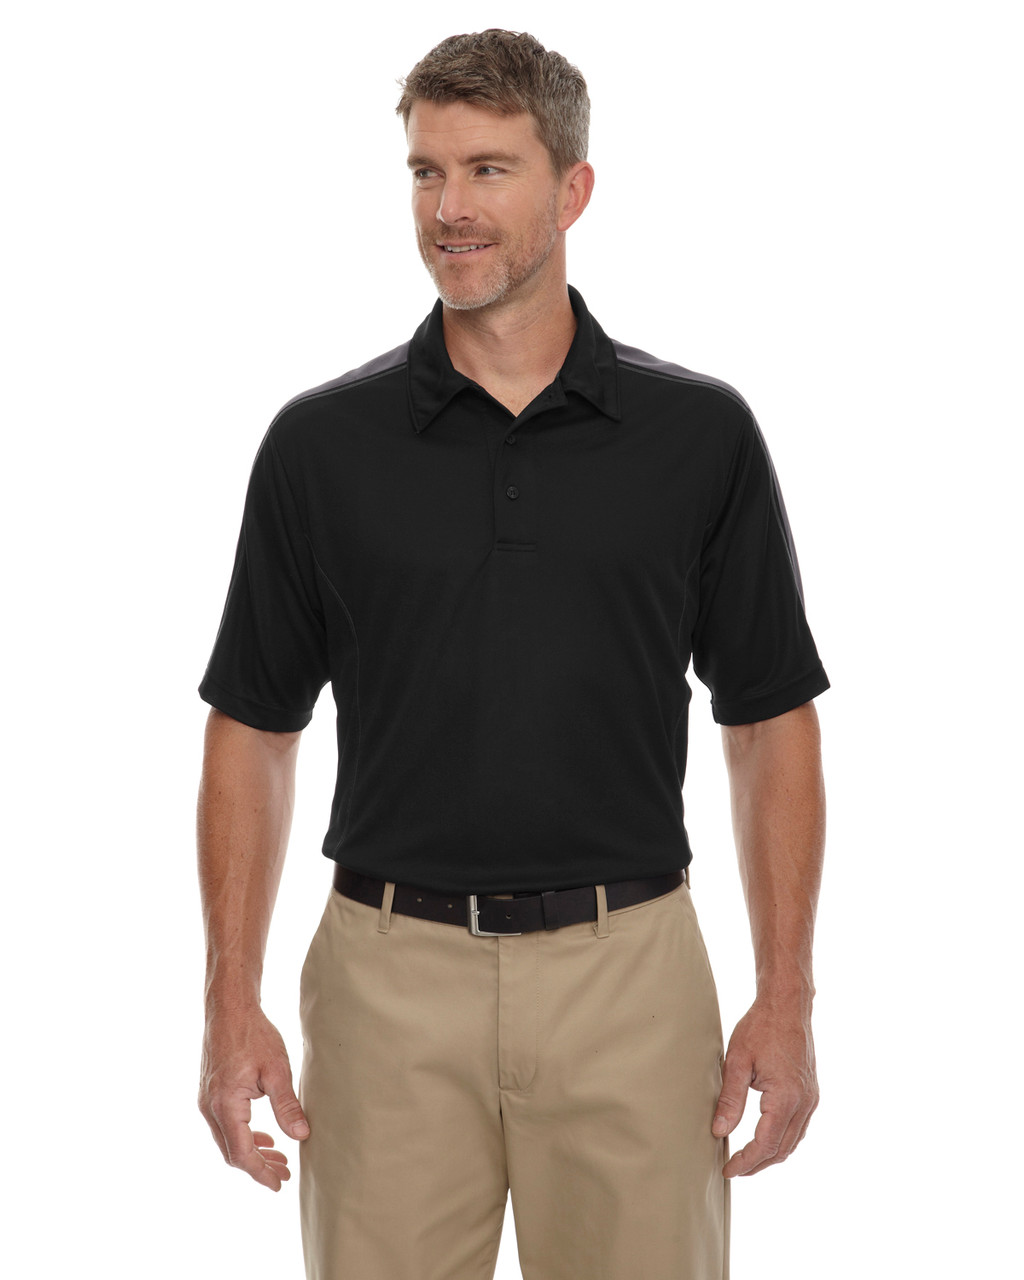 Black - 85089 Extreme Men's Eperformance Pique Color-Block Polo Shirt | BlankClothing.ca